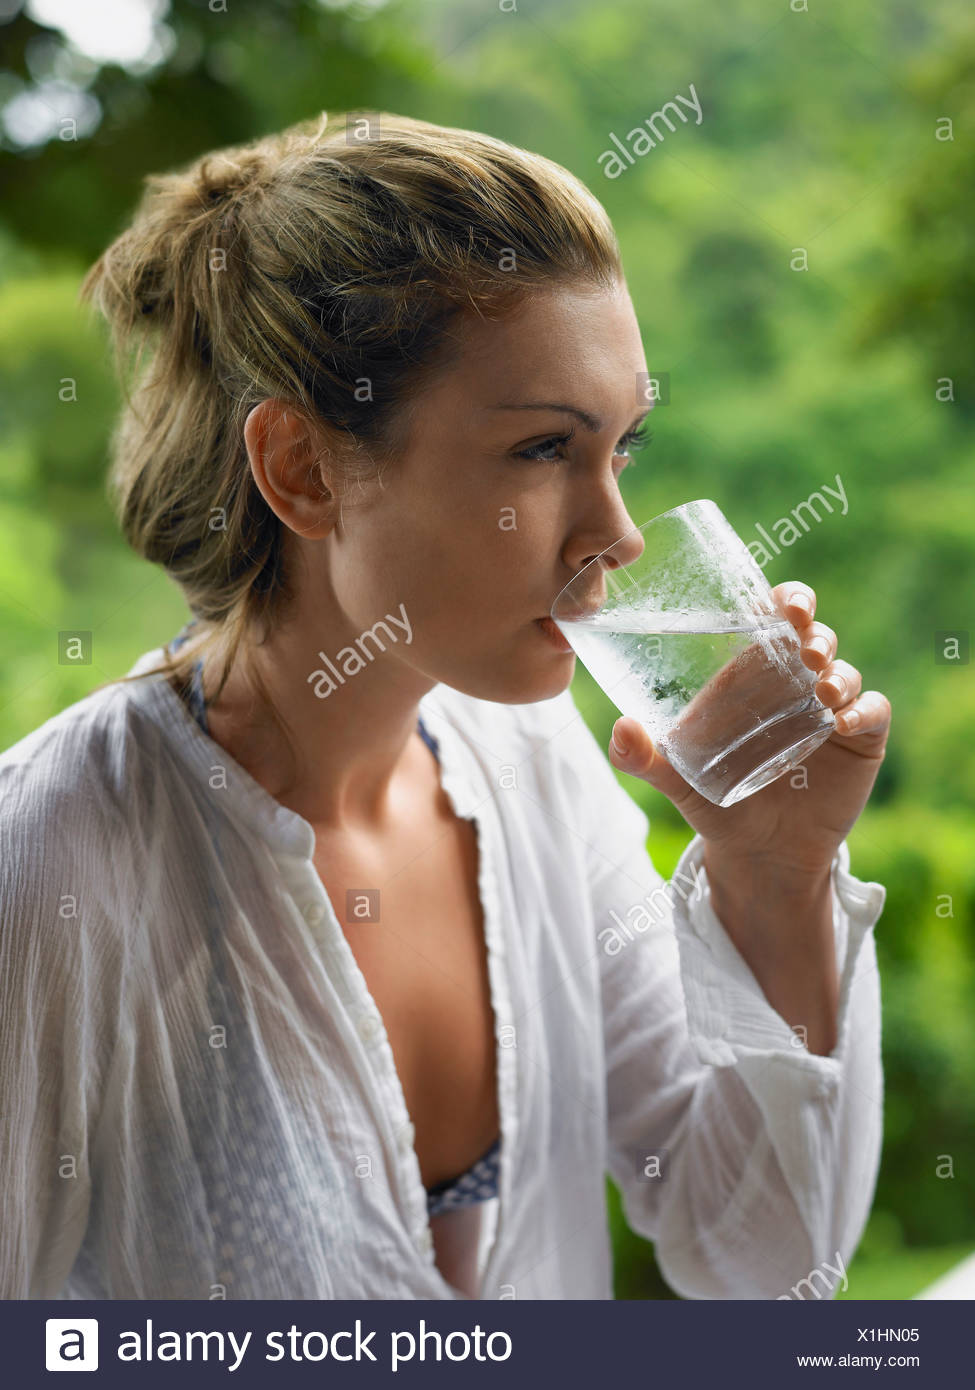 Young Woman Drinking Water - Stock Image